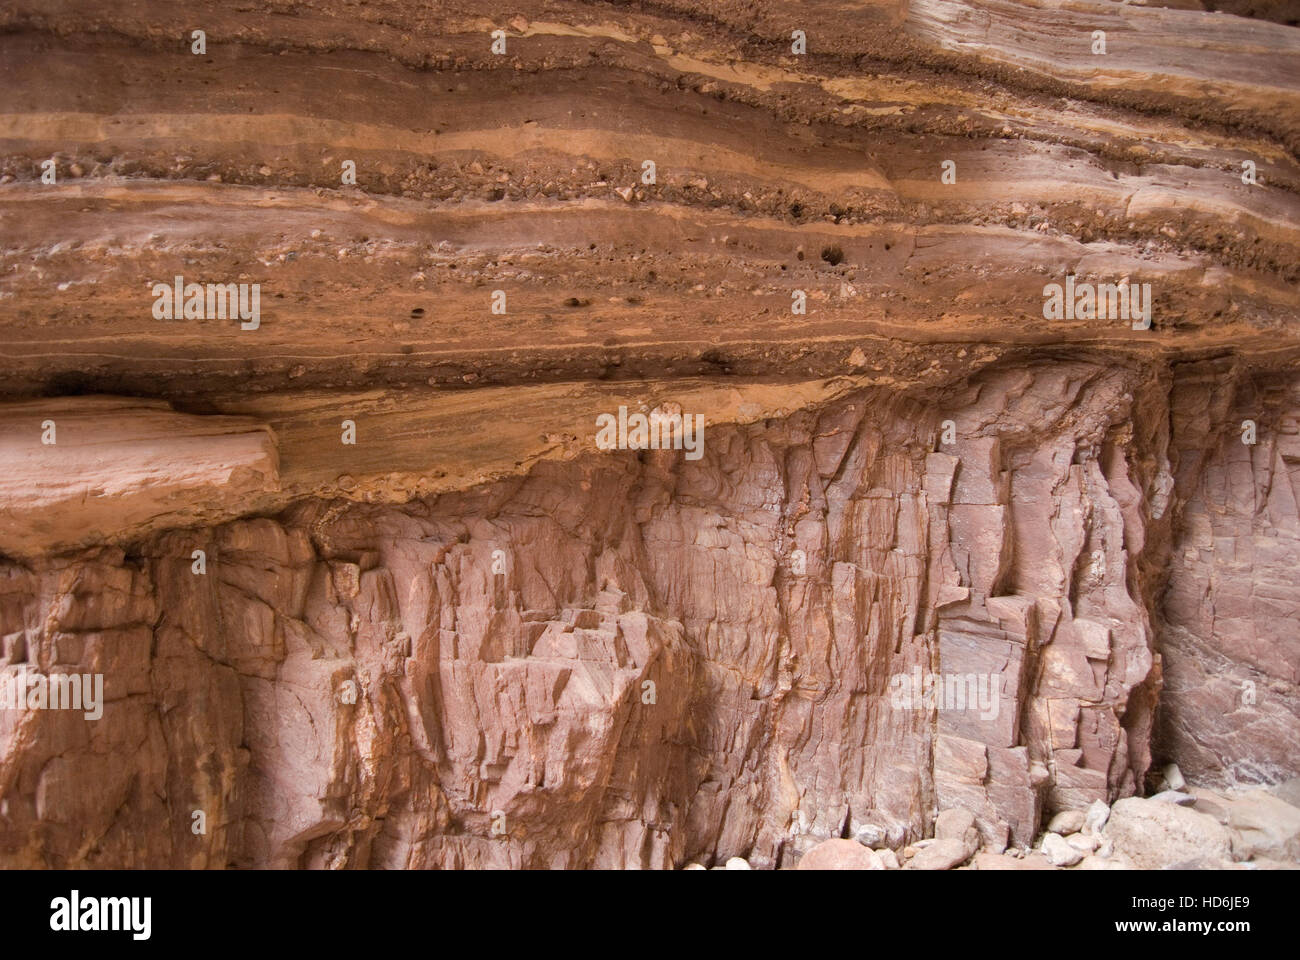 The Great Unconformity in Blacktail Canyon. Cambrian Tapeats Sandstone resting upon Early Proterozoic Vishnu Schist. - Stock Image